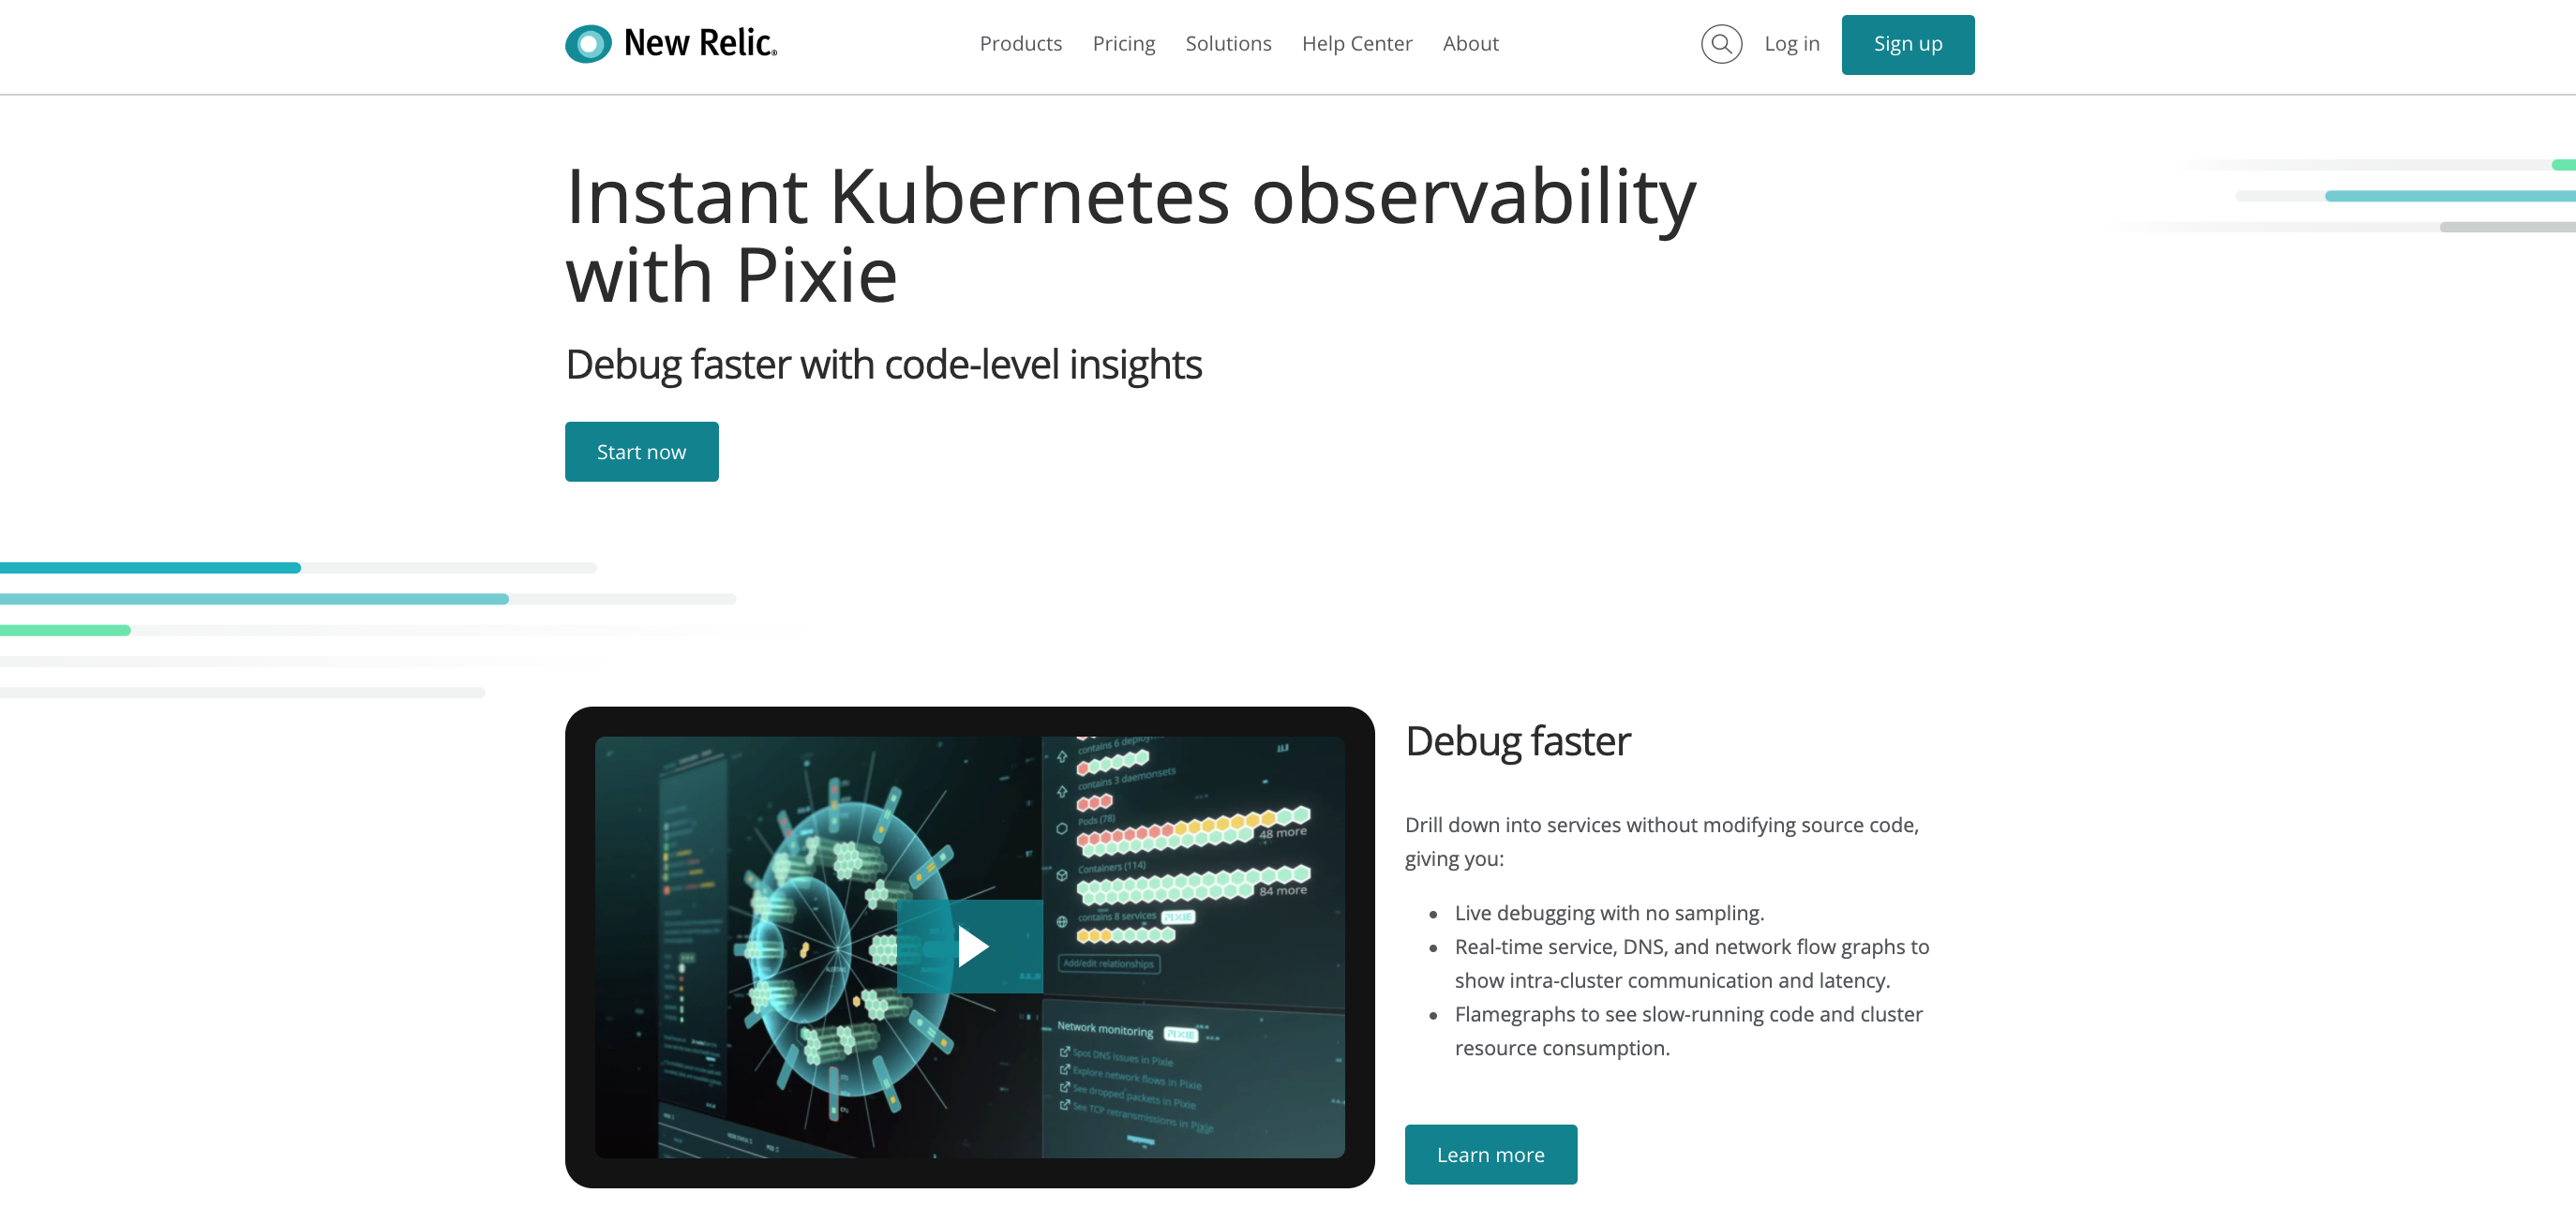 Pixie by New Relic Kubernetes Monitoring SaaS Platform